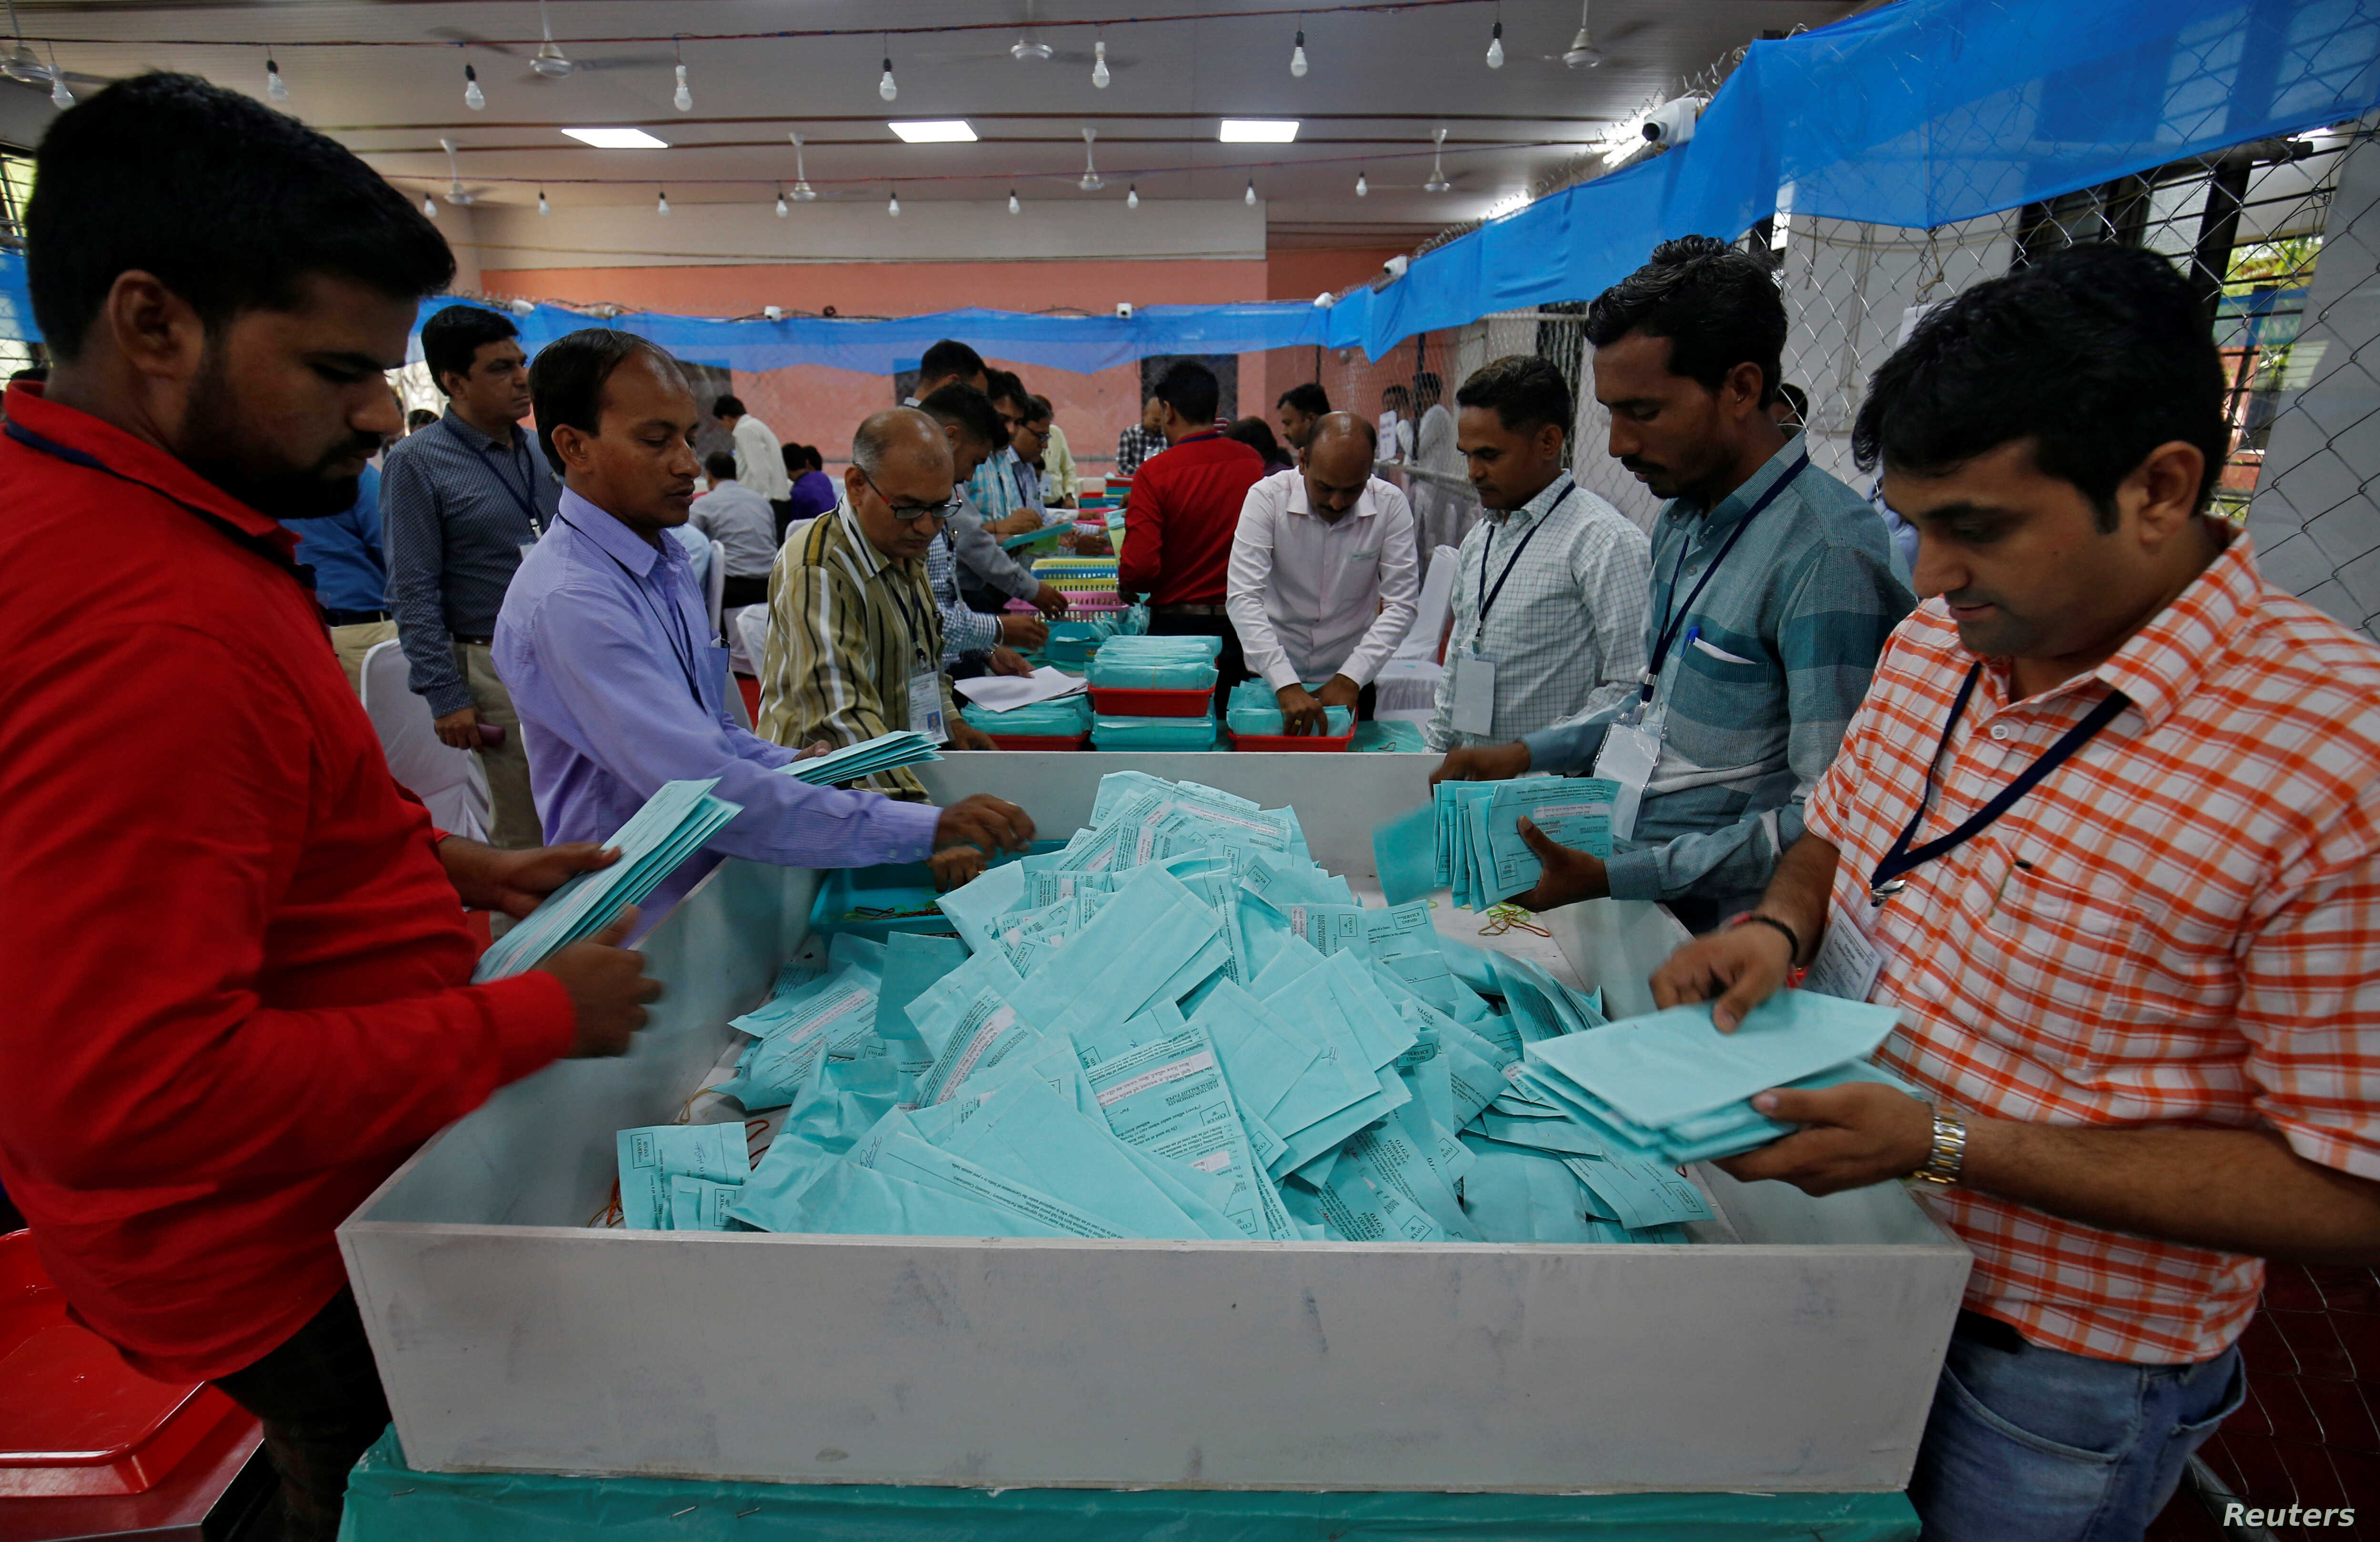 Election staff members sort ballot papers before counting them inside a vote counting center in Ahmedabad, India, May 23, 2019.